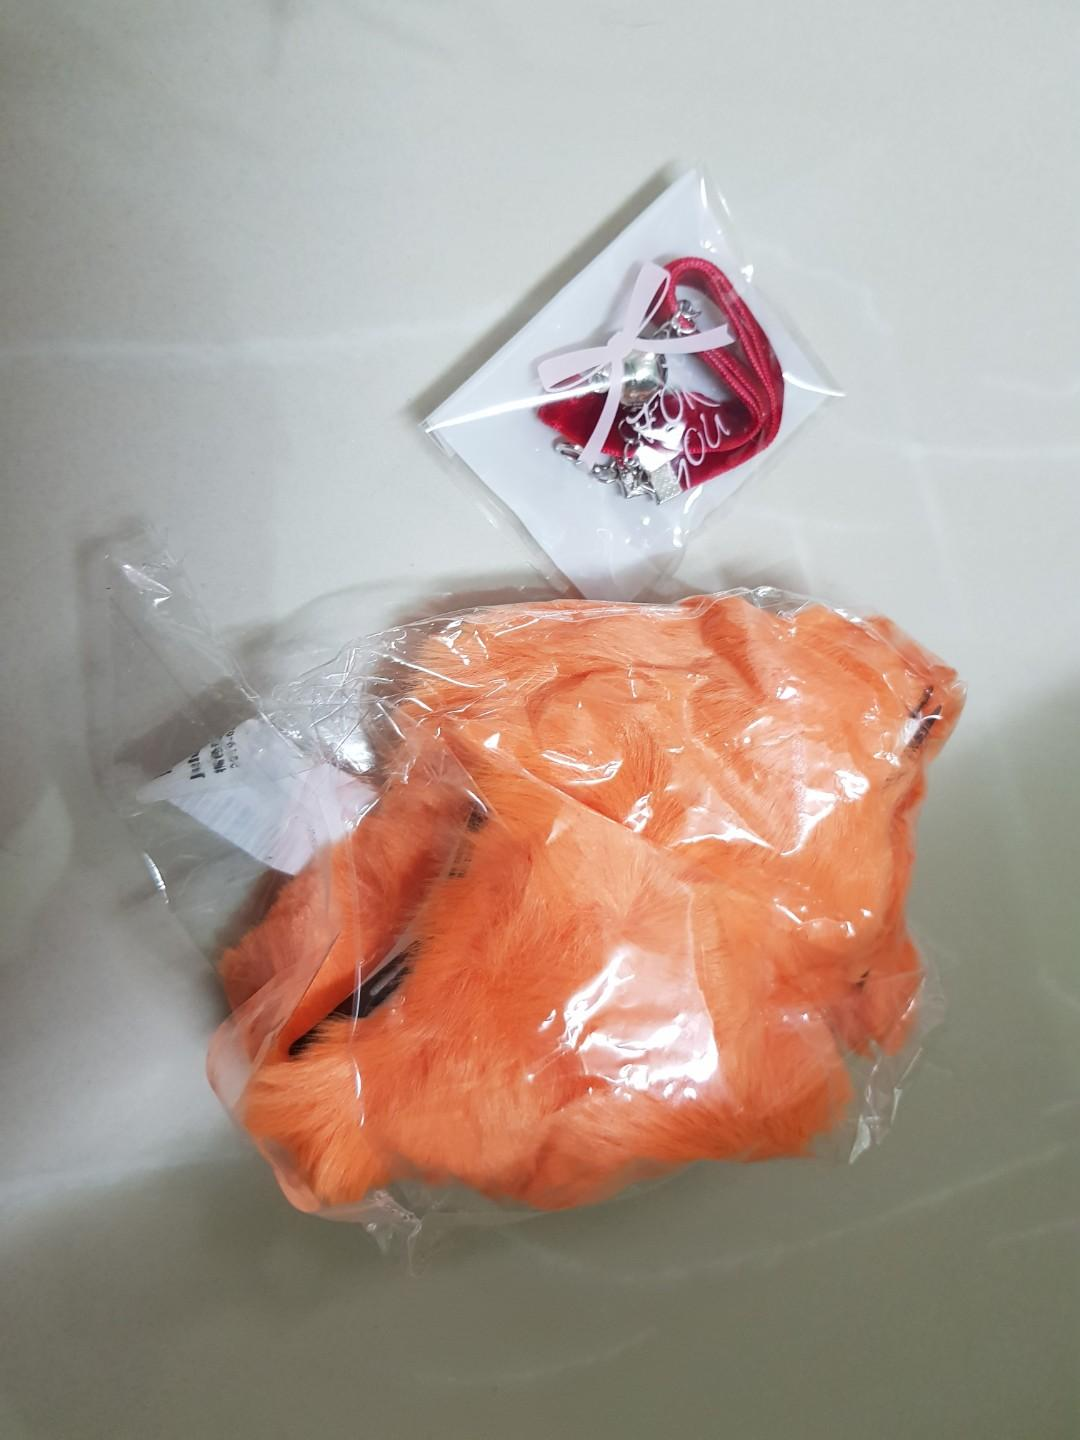 Firefox Ahri League of Legends LoL Cosplay Costume + Wig + Tails + Shoe Covers + Ears